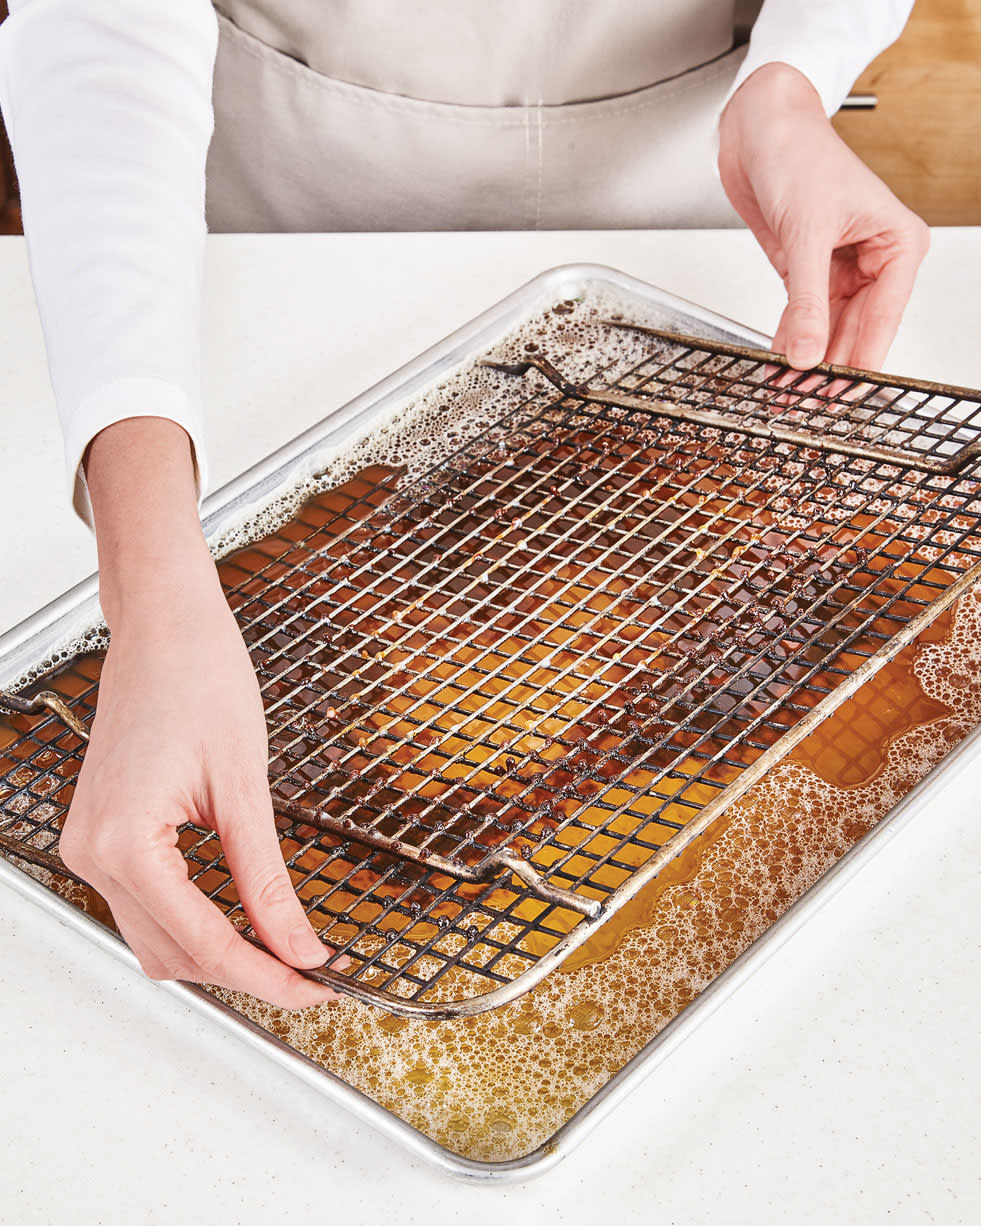 How to Clean a Wire Cooling Rack